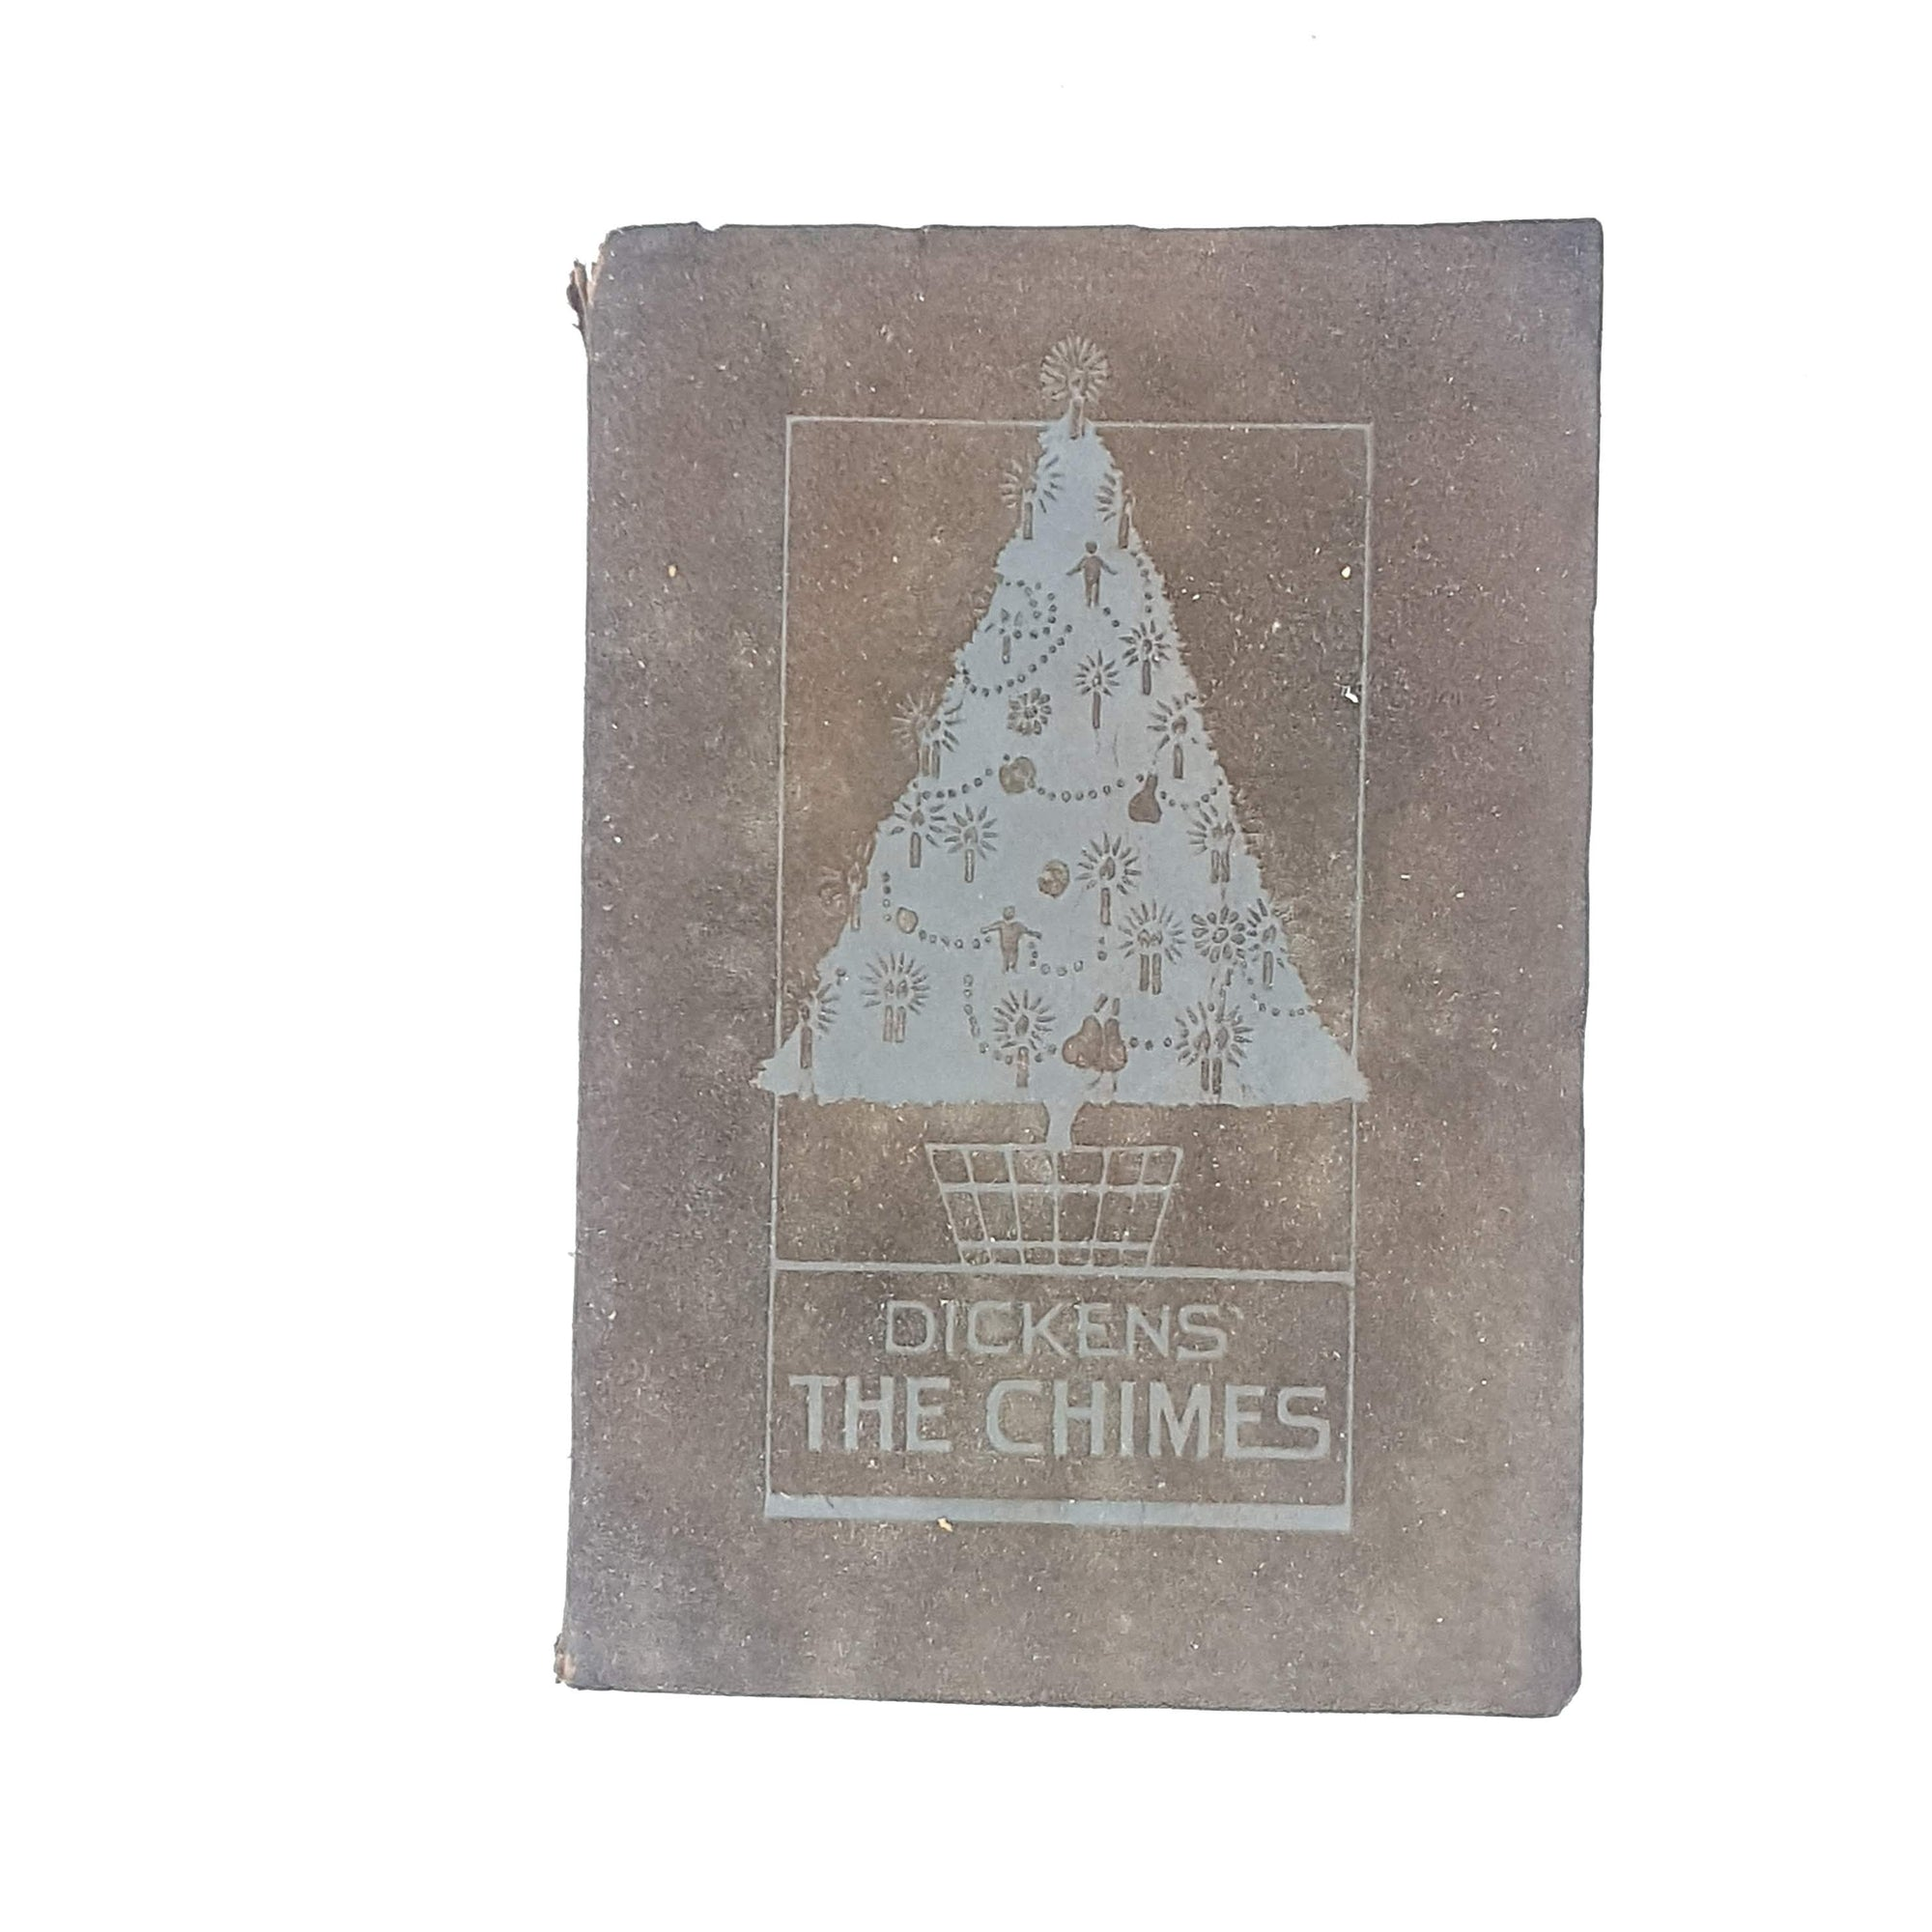 Leatherbound Charles Dickens's The Chimes